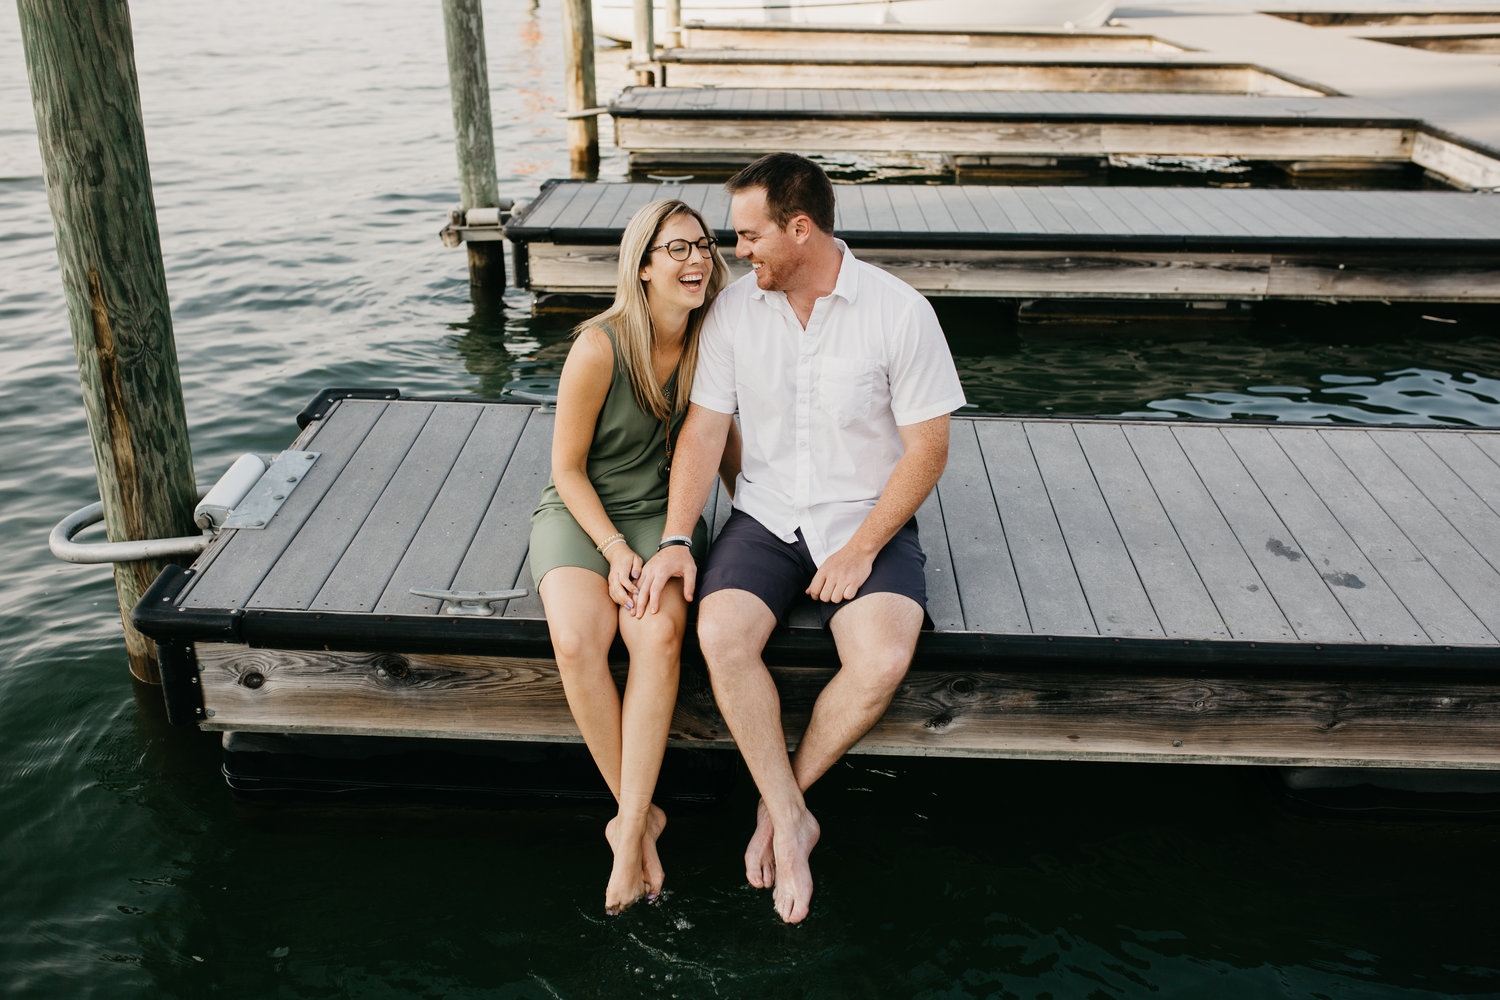 Brian & Ashley - Lake Norman, NC — Alli McConnell Photography